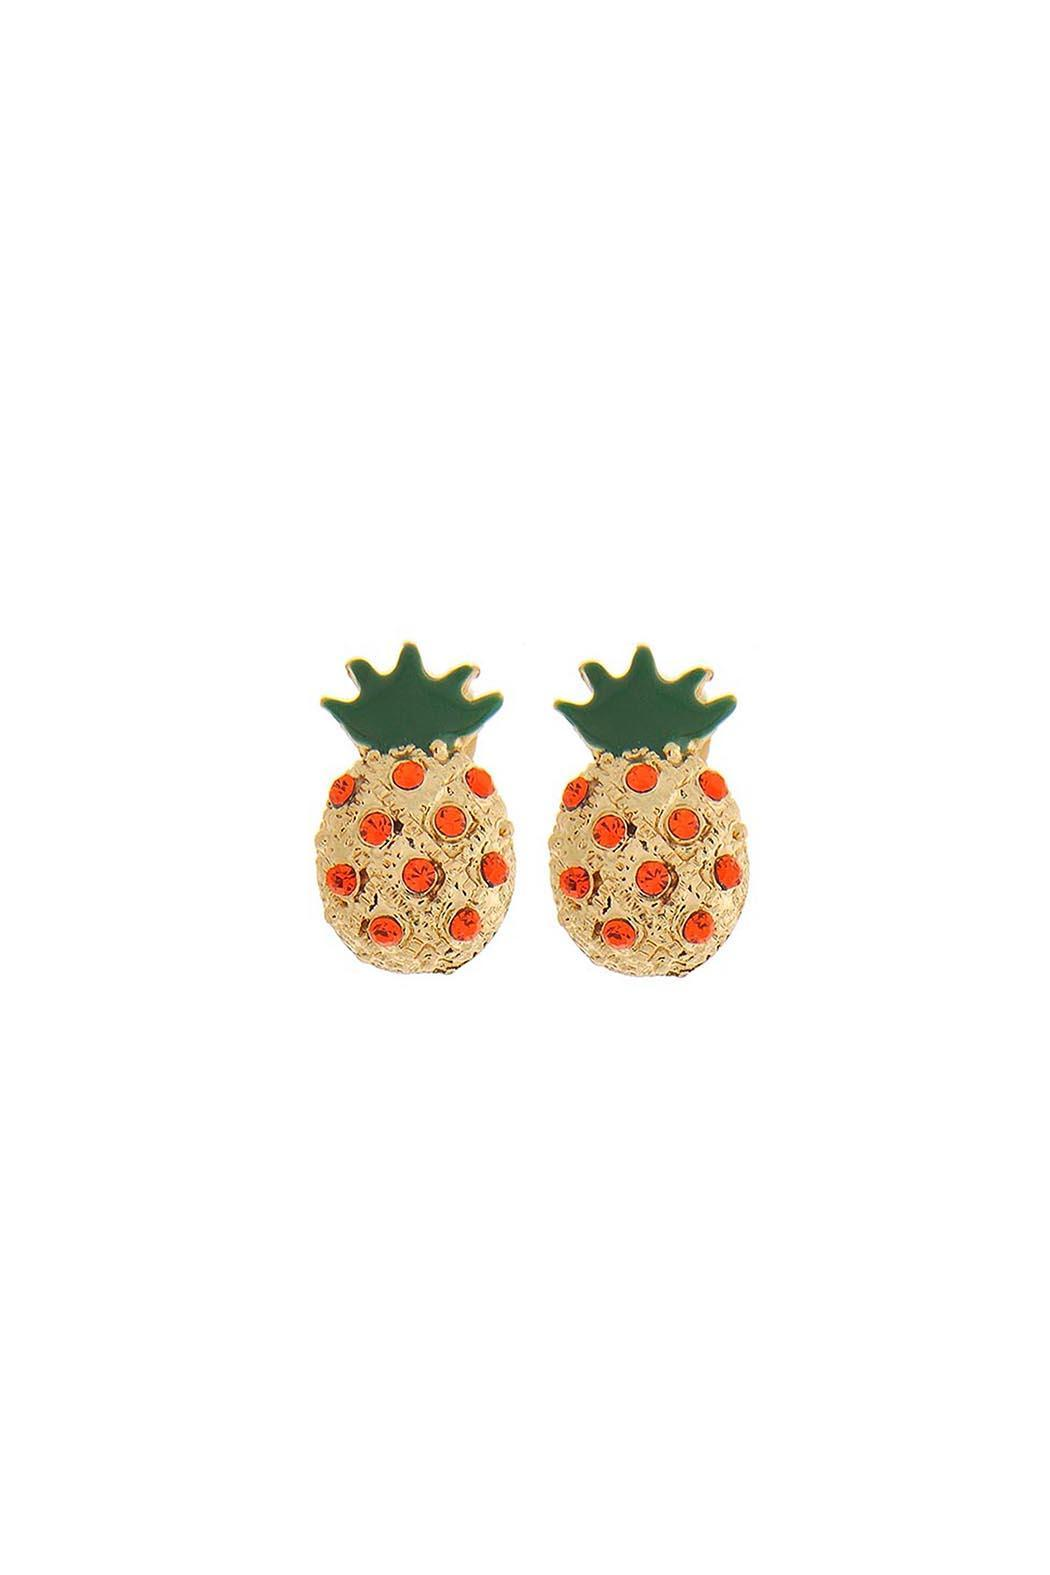 stud earring shop sale spring holst pineapple lee earrings